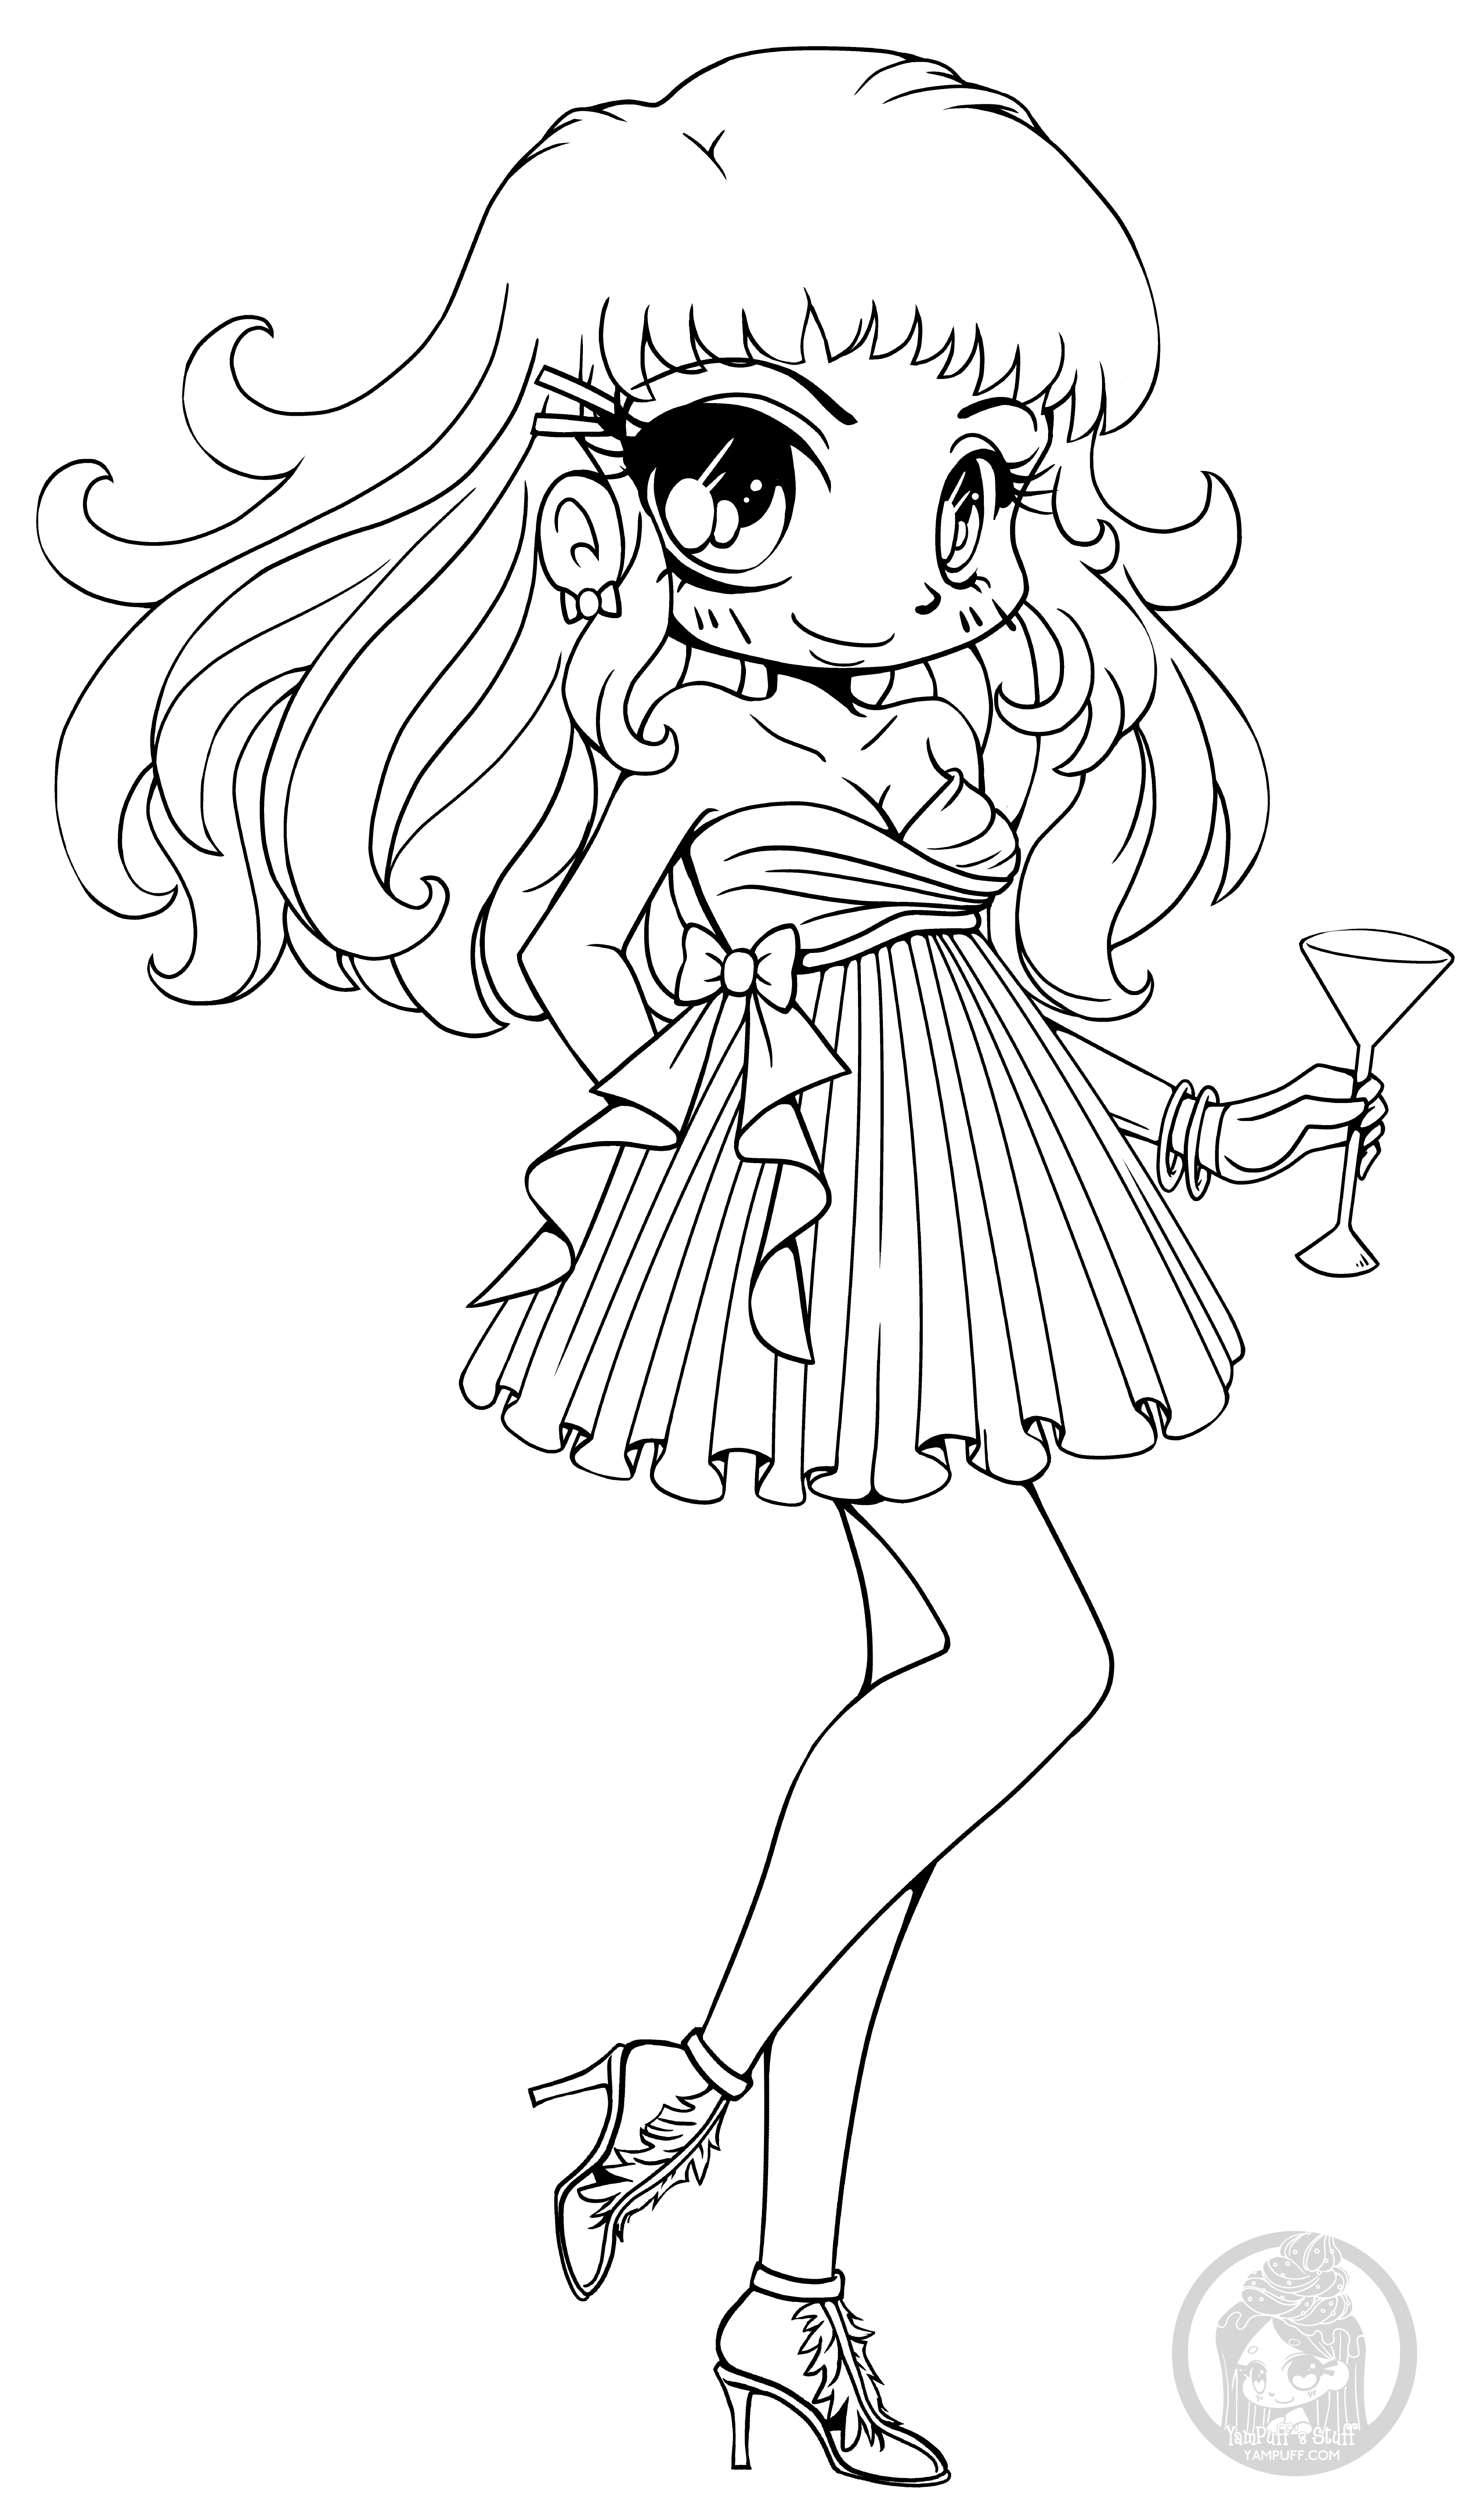 cute chibi girl coloring pages chibis free chibi coloring pages yampuff39s stuff girl pages chibi cute coloring